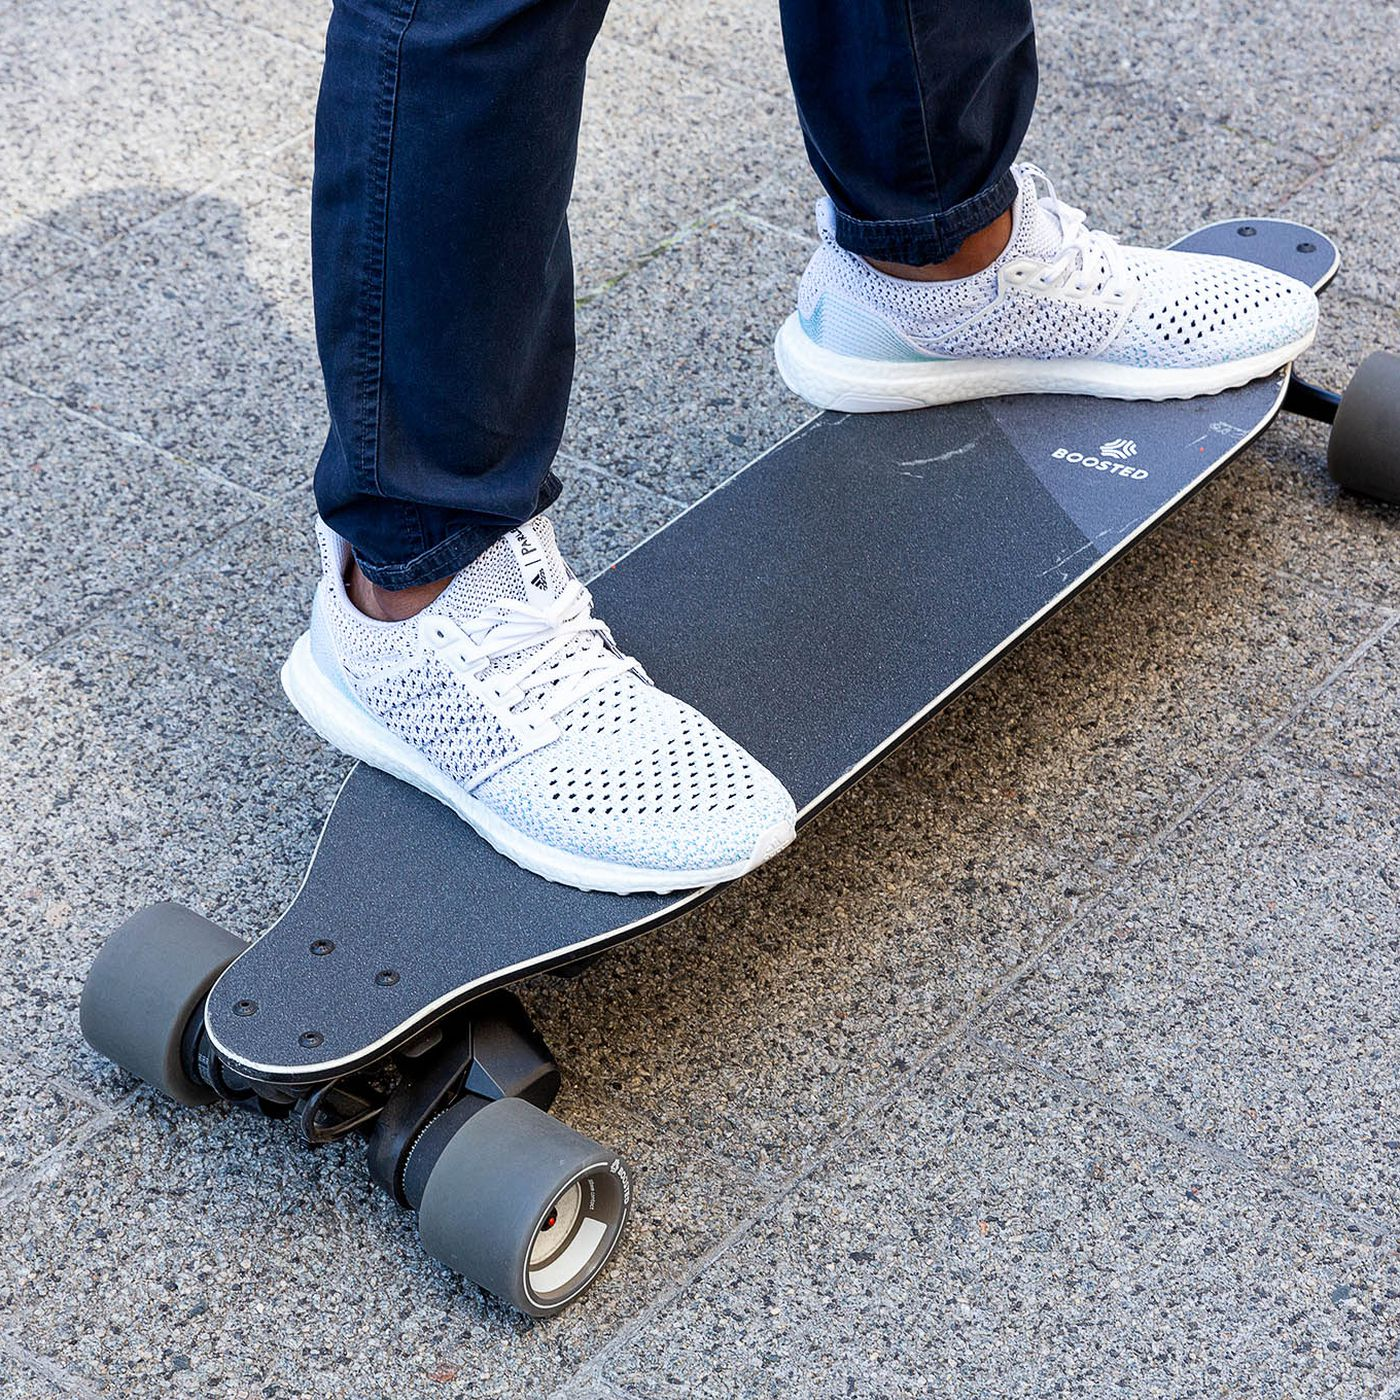 Boosted Board Stealth review: speed racer - The Verge